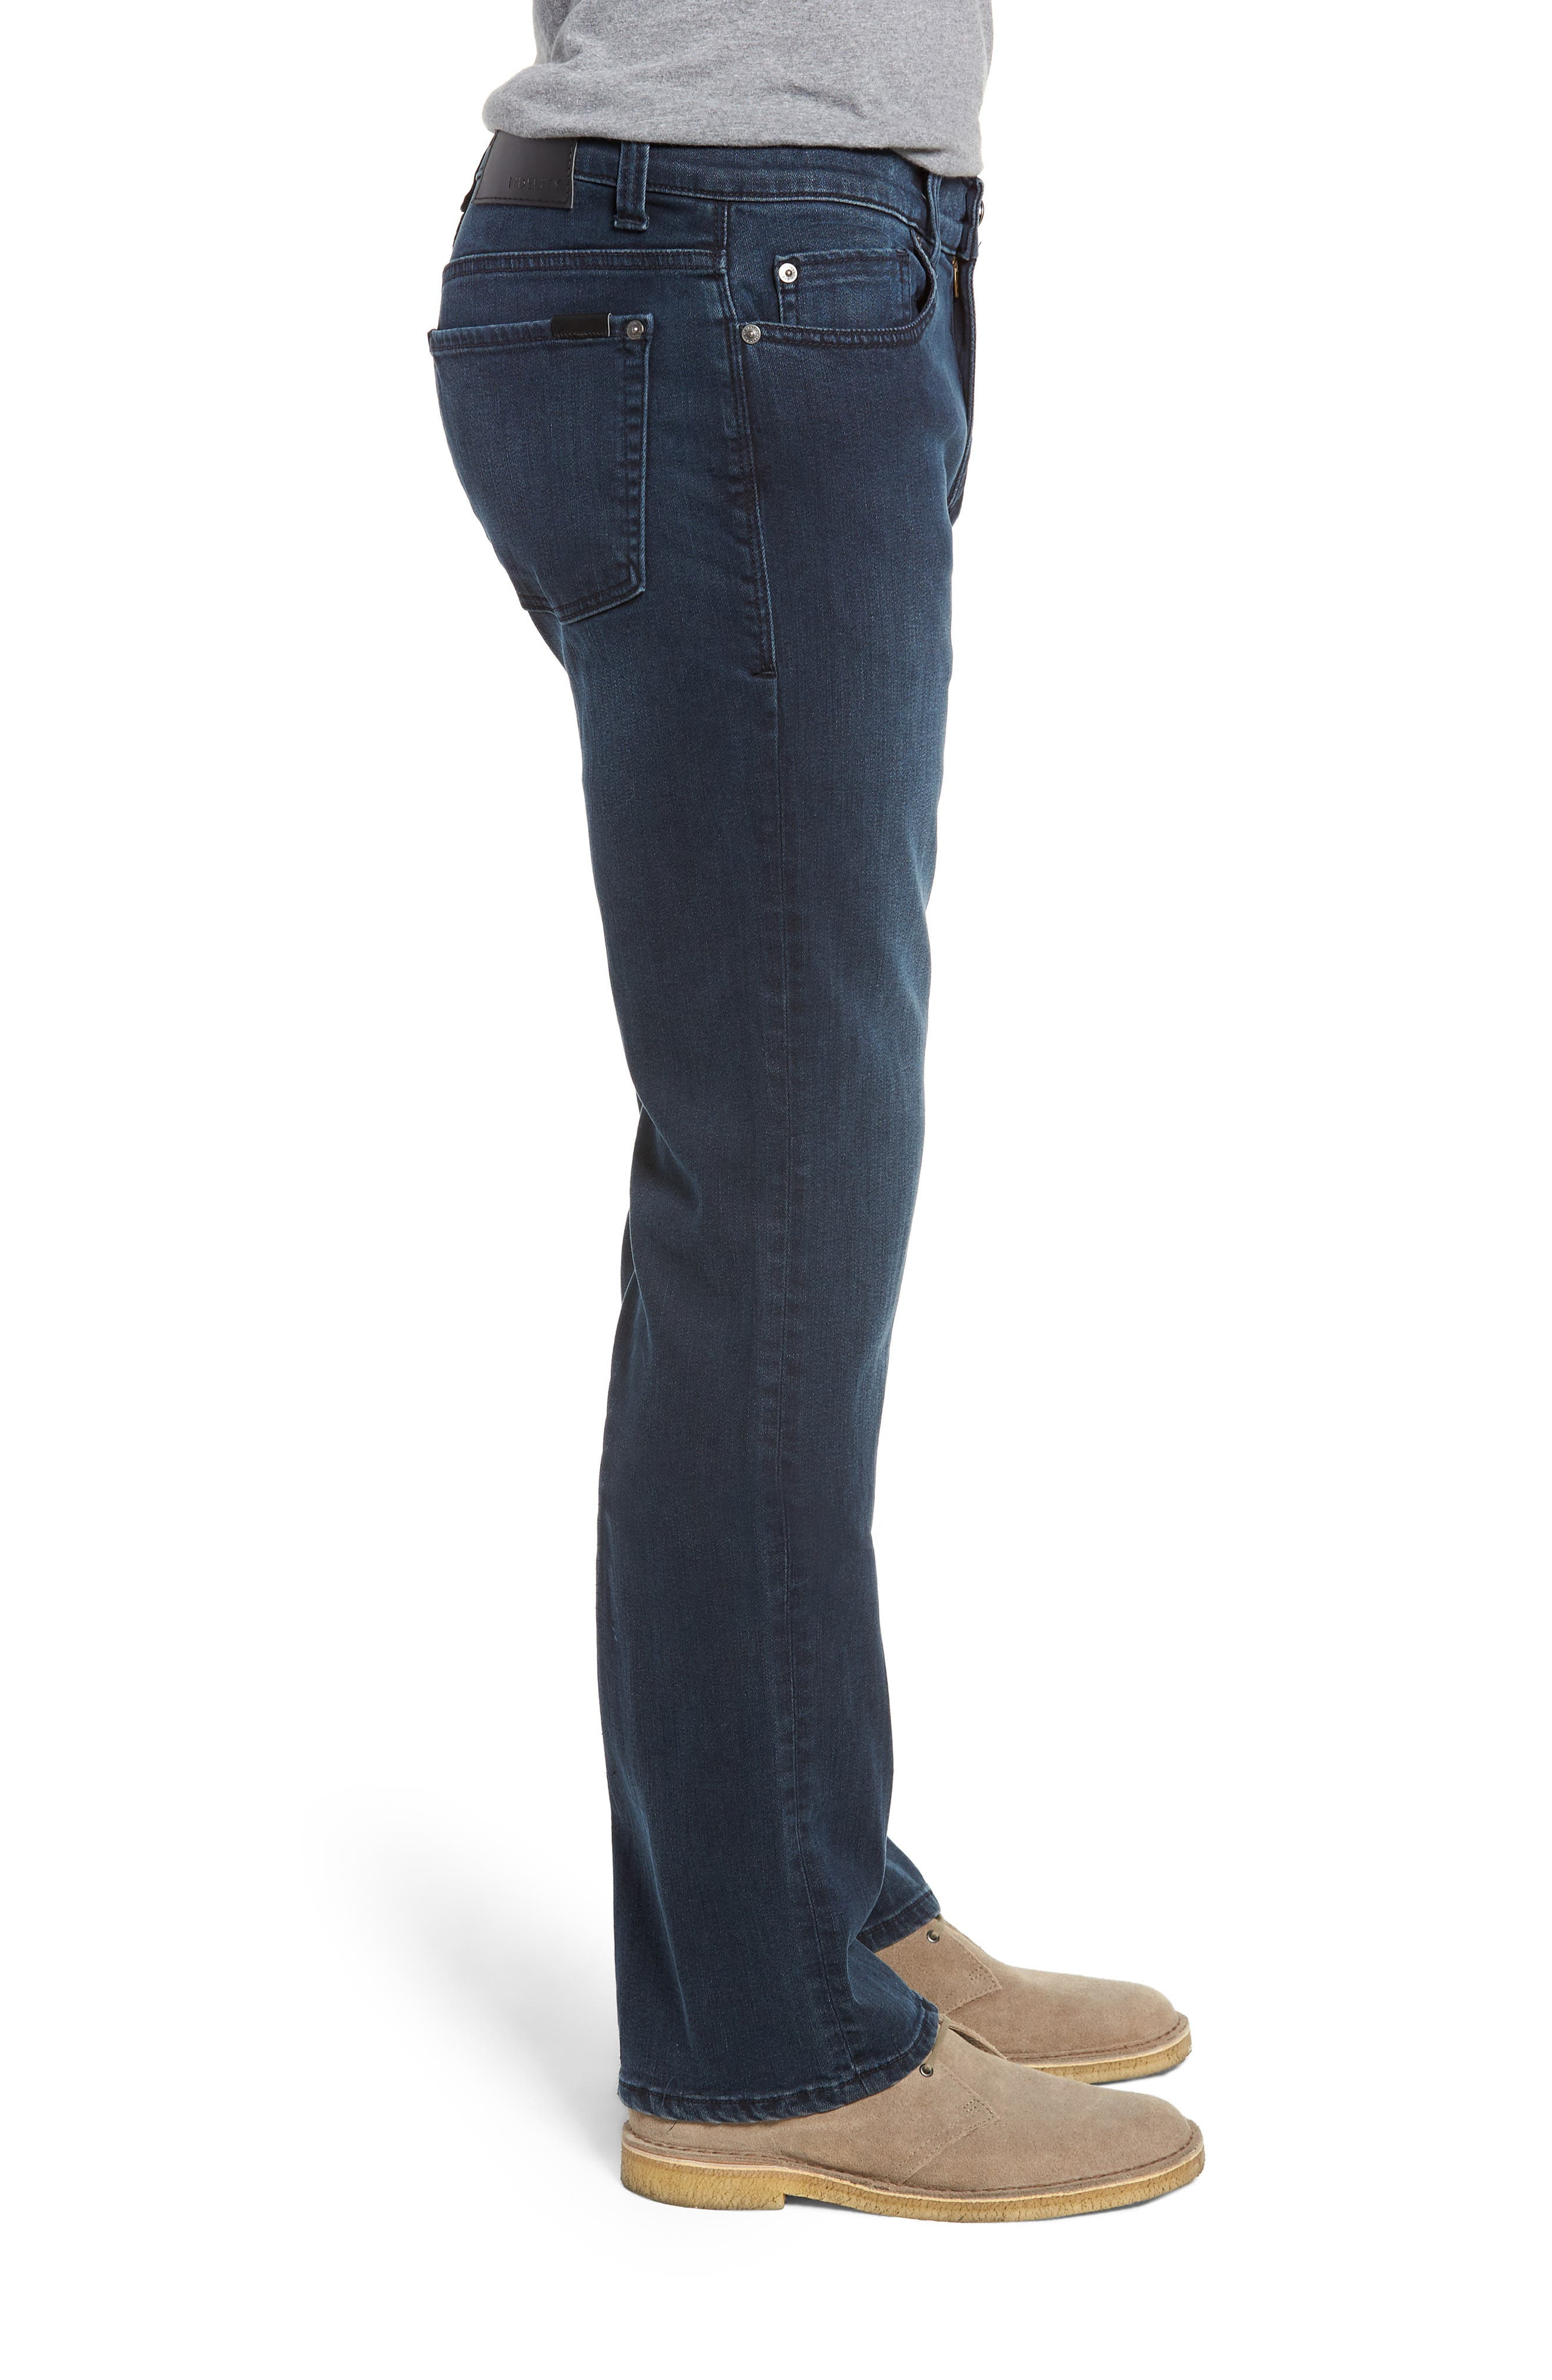 50-11 Relaxed Fit Jeans,                             Alternate thumbnail 3, color,                             MILLI BLUE